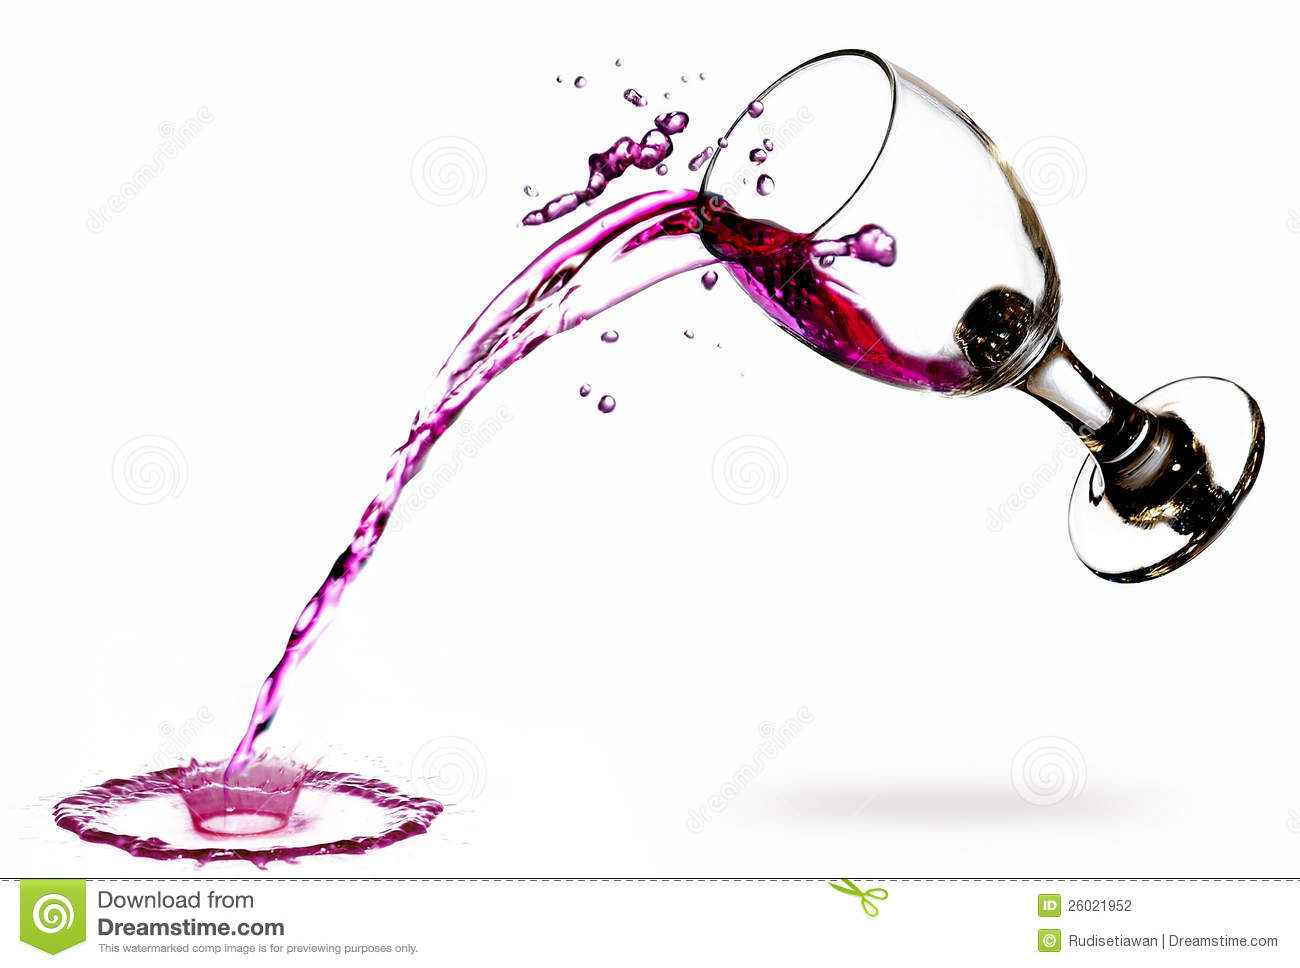 Spilled Red Wine Stock Photography Image 26021952 : spilled red wine 26021952 from www.dreamstime.com size 1300 x 968 jpeg 88kB